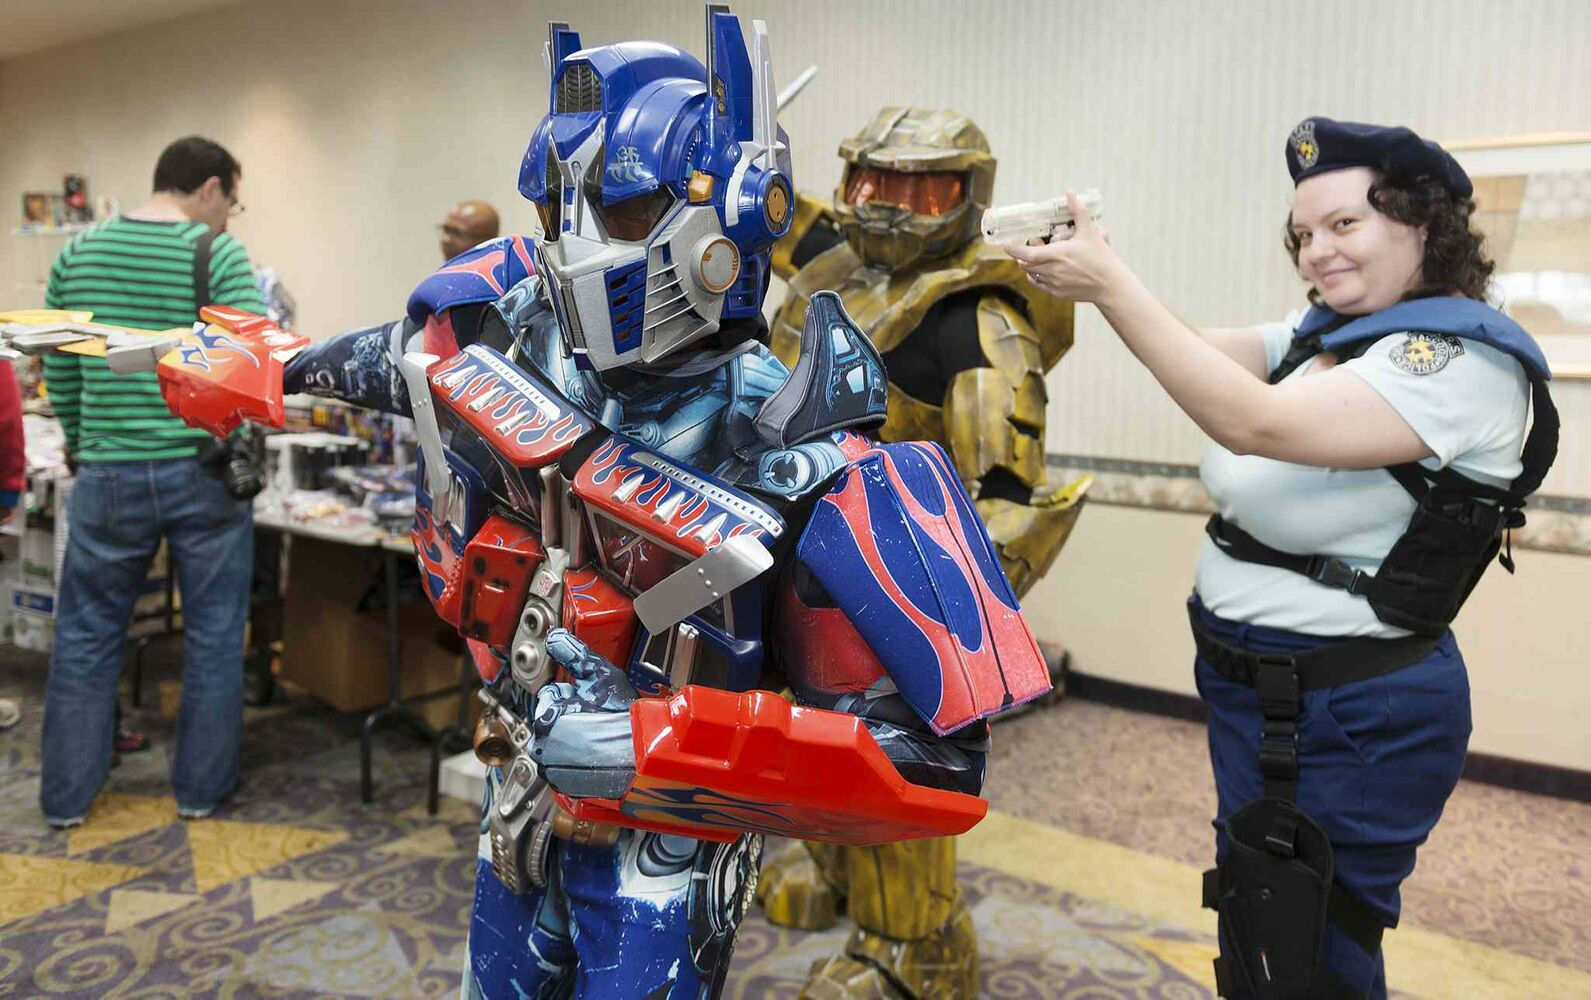 Gregory Marrast with Higher Functions Productions dresses up as Optimus Prime along with James Antoine as Griff from Halo Red vs. Blue and Sheila Breer as Jill Valentine from Resident Evil on Saturday at the Transformers Convention at the Clarion Hotel. (Sarah Taylor / Winnipeg Free Press)